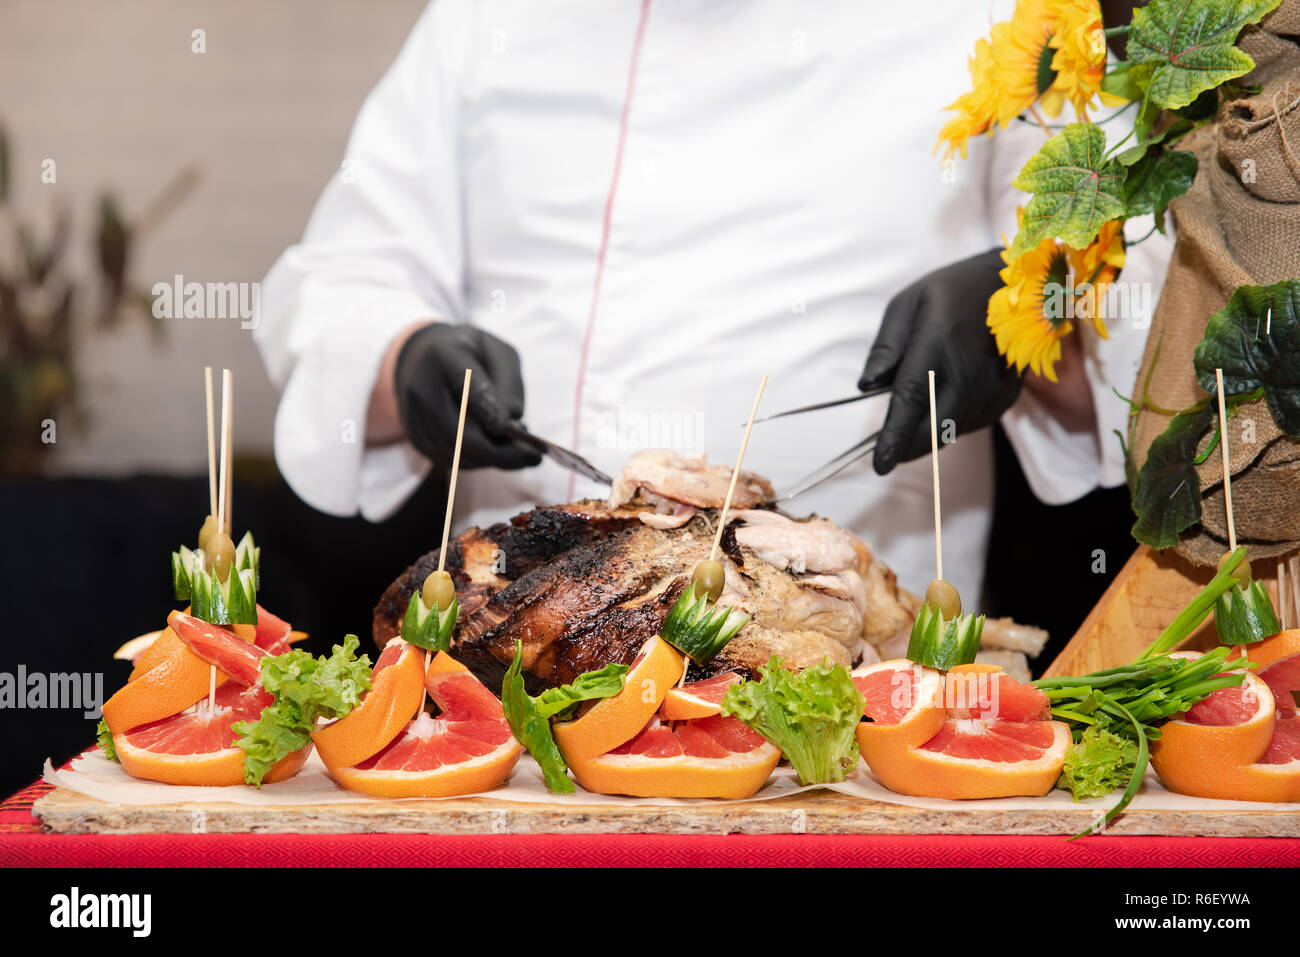 Show at restaurant: chief cook cuts into pieces freshly cooked pork thigh, process close up. Decorations of fruits and vegetables on the table, catering - Stock Image